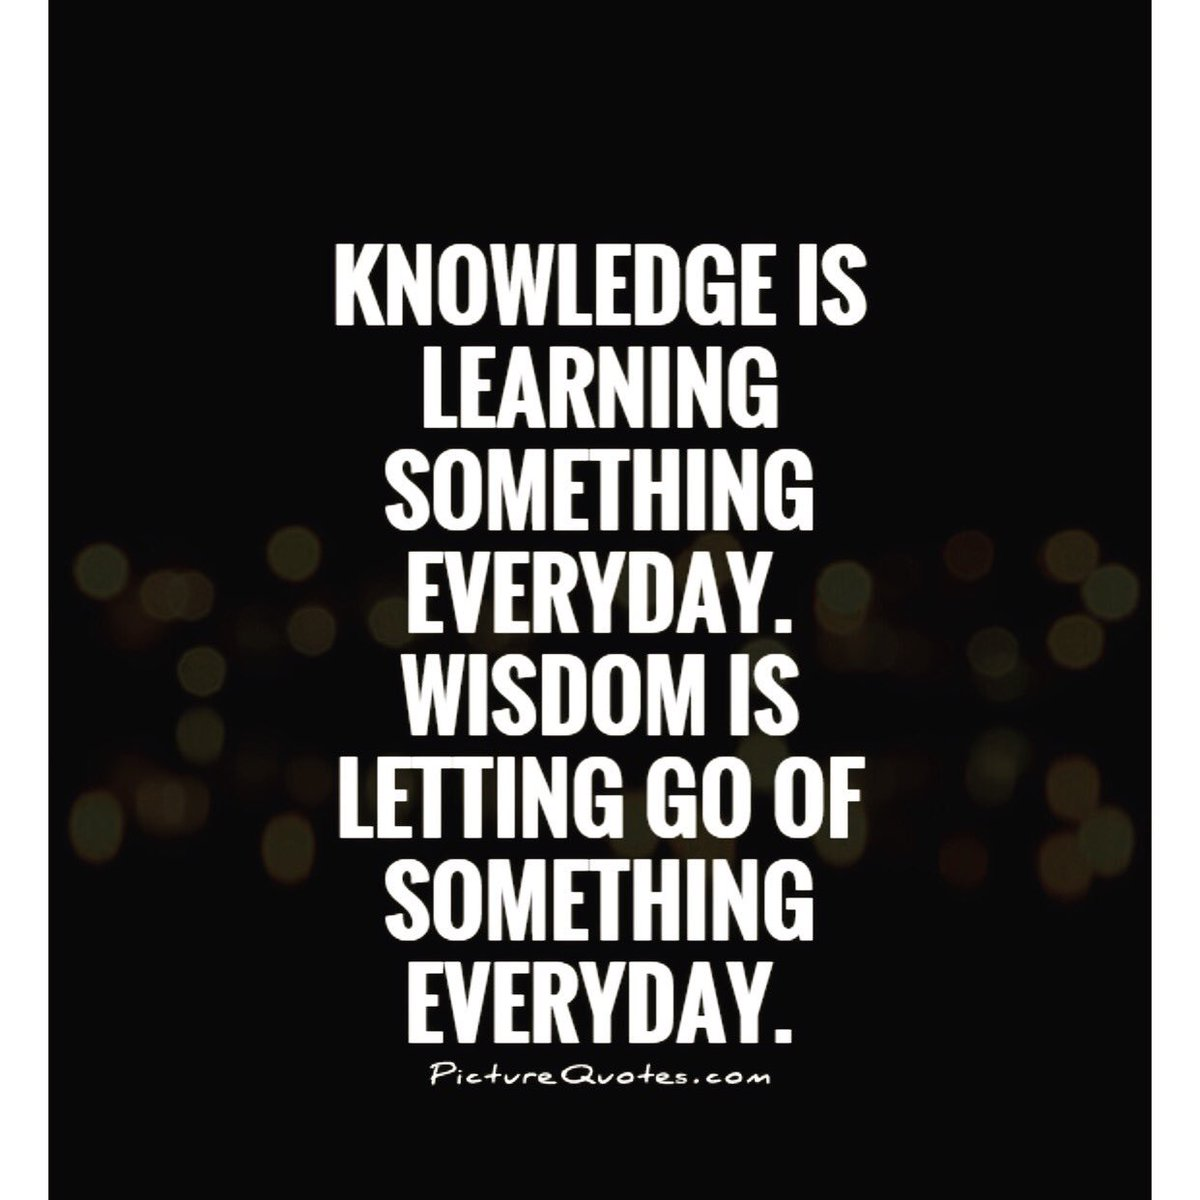 Knowledge is learning something everyday. Wisdom is letting go of some...